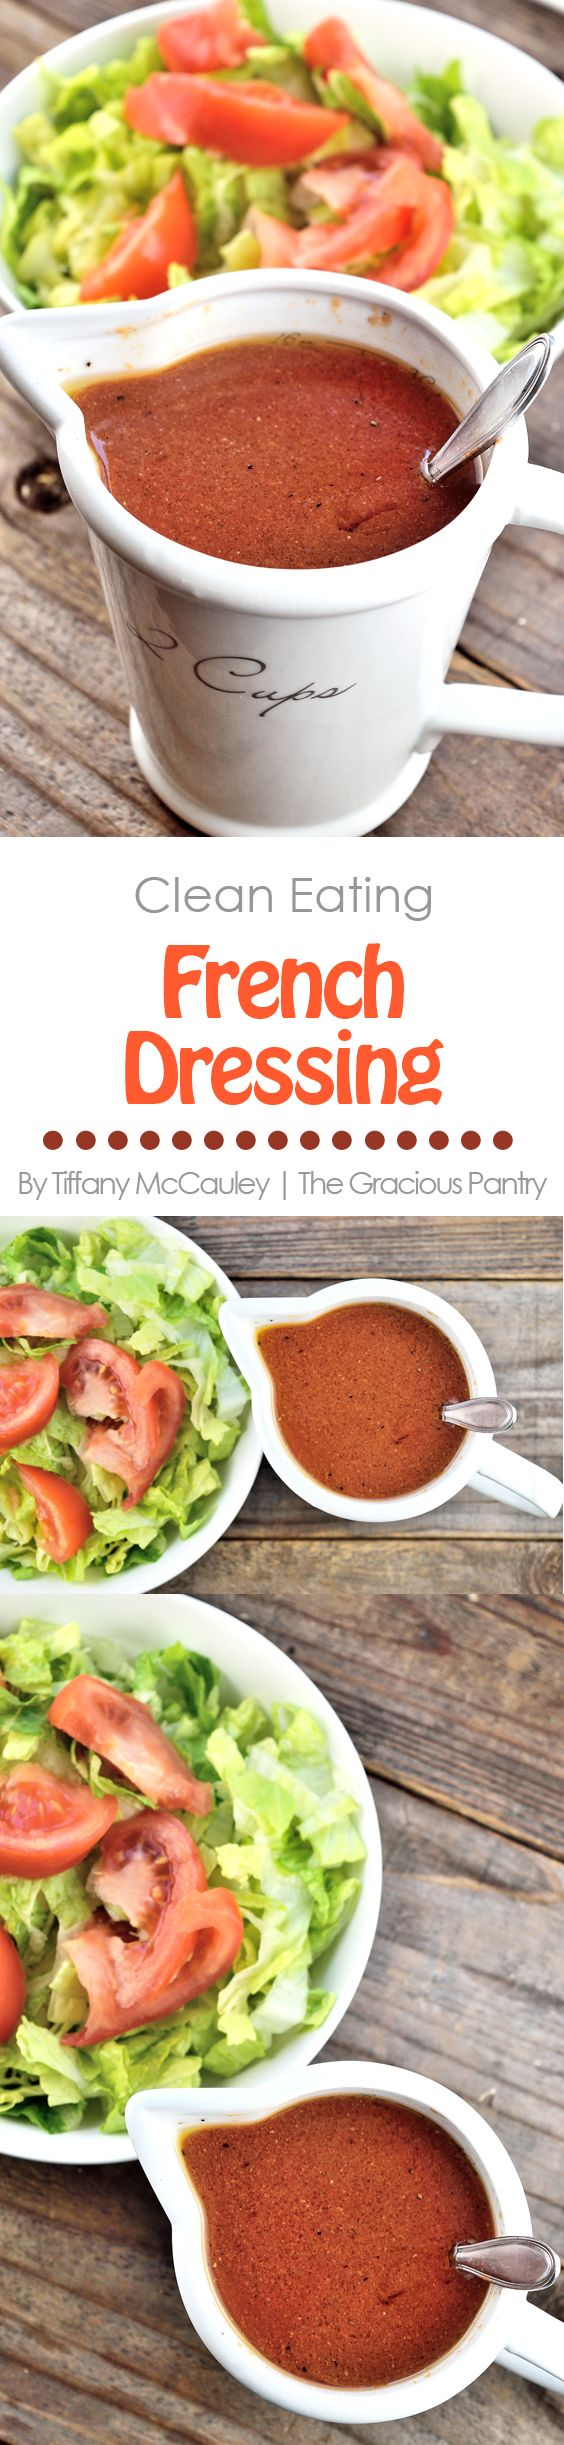 This delicious, Clean Eating French Dressing is the perfect replacement for the chemical-ridden version you buy at the store. And it's totally yummy!